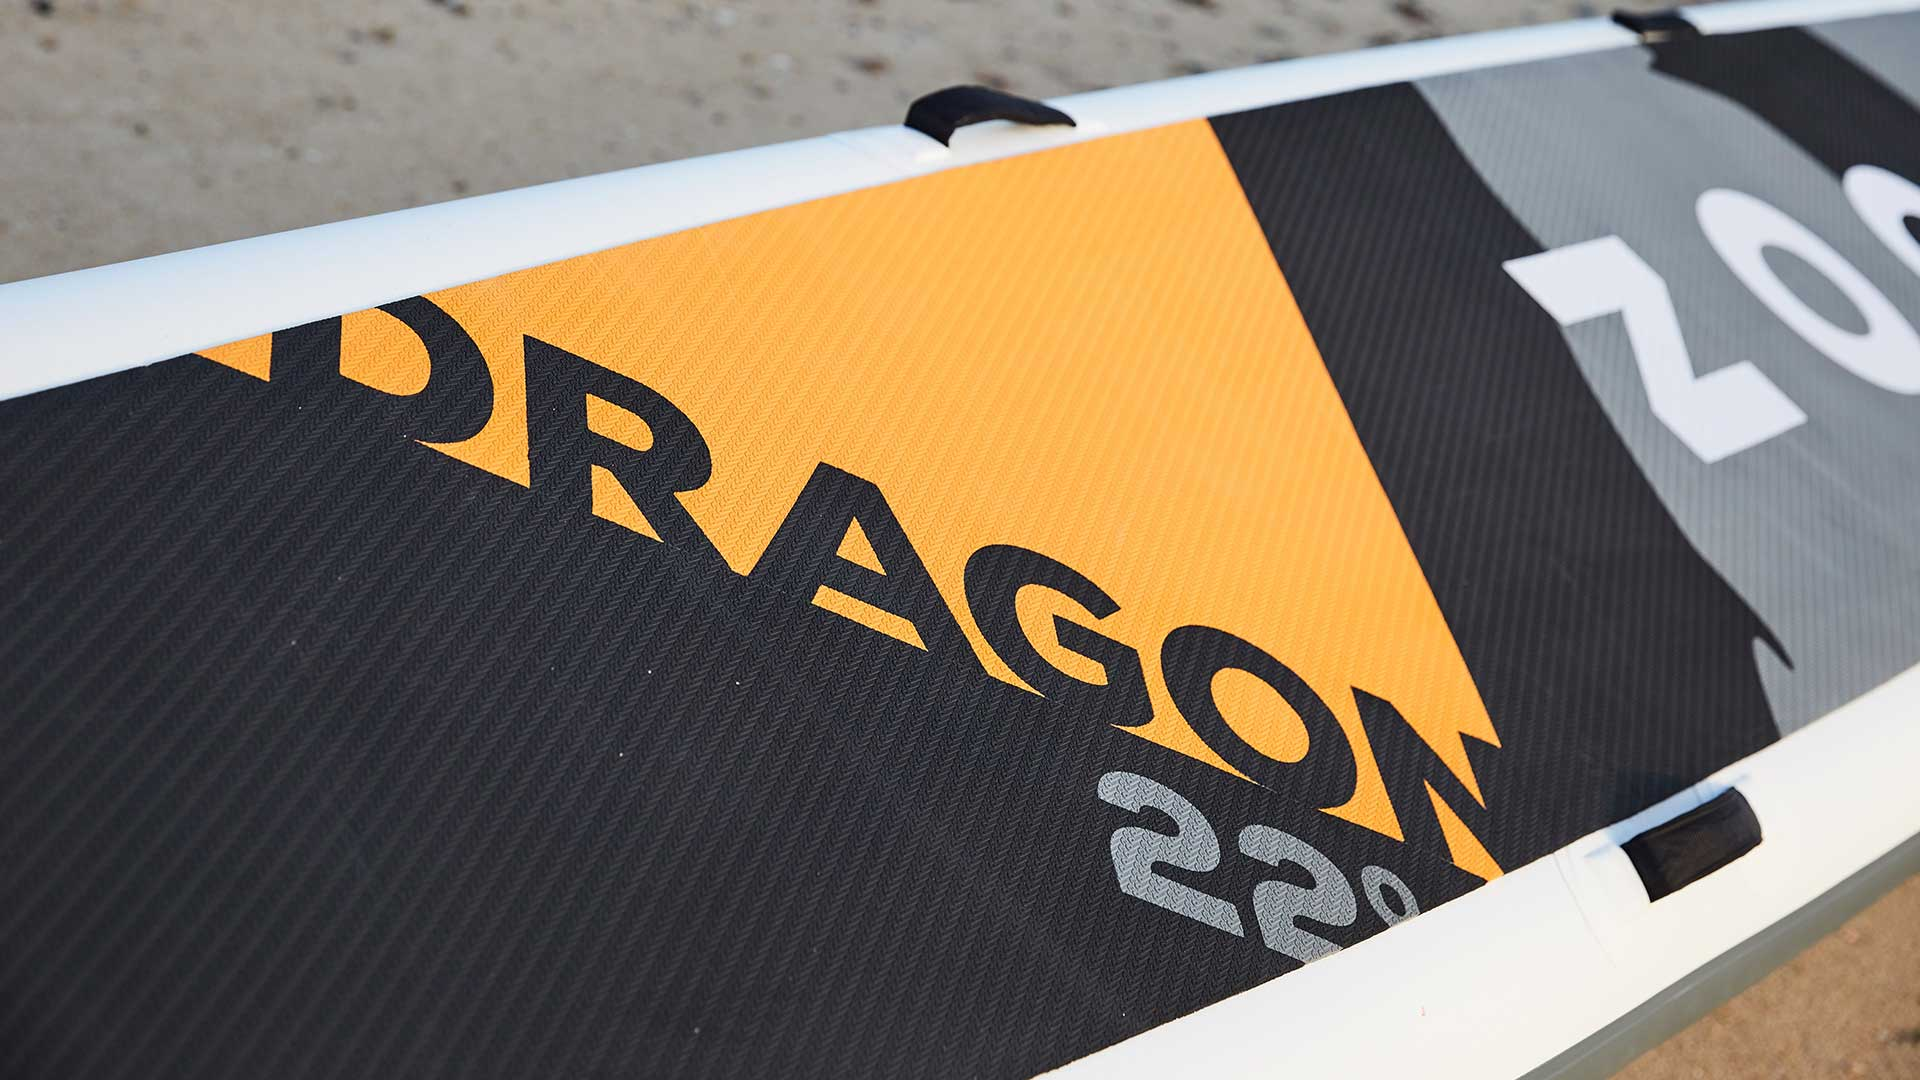 redpaddleco-220-dragon-inflatable-paddle-board-desktop-gallery-deckpad